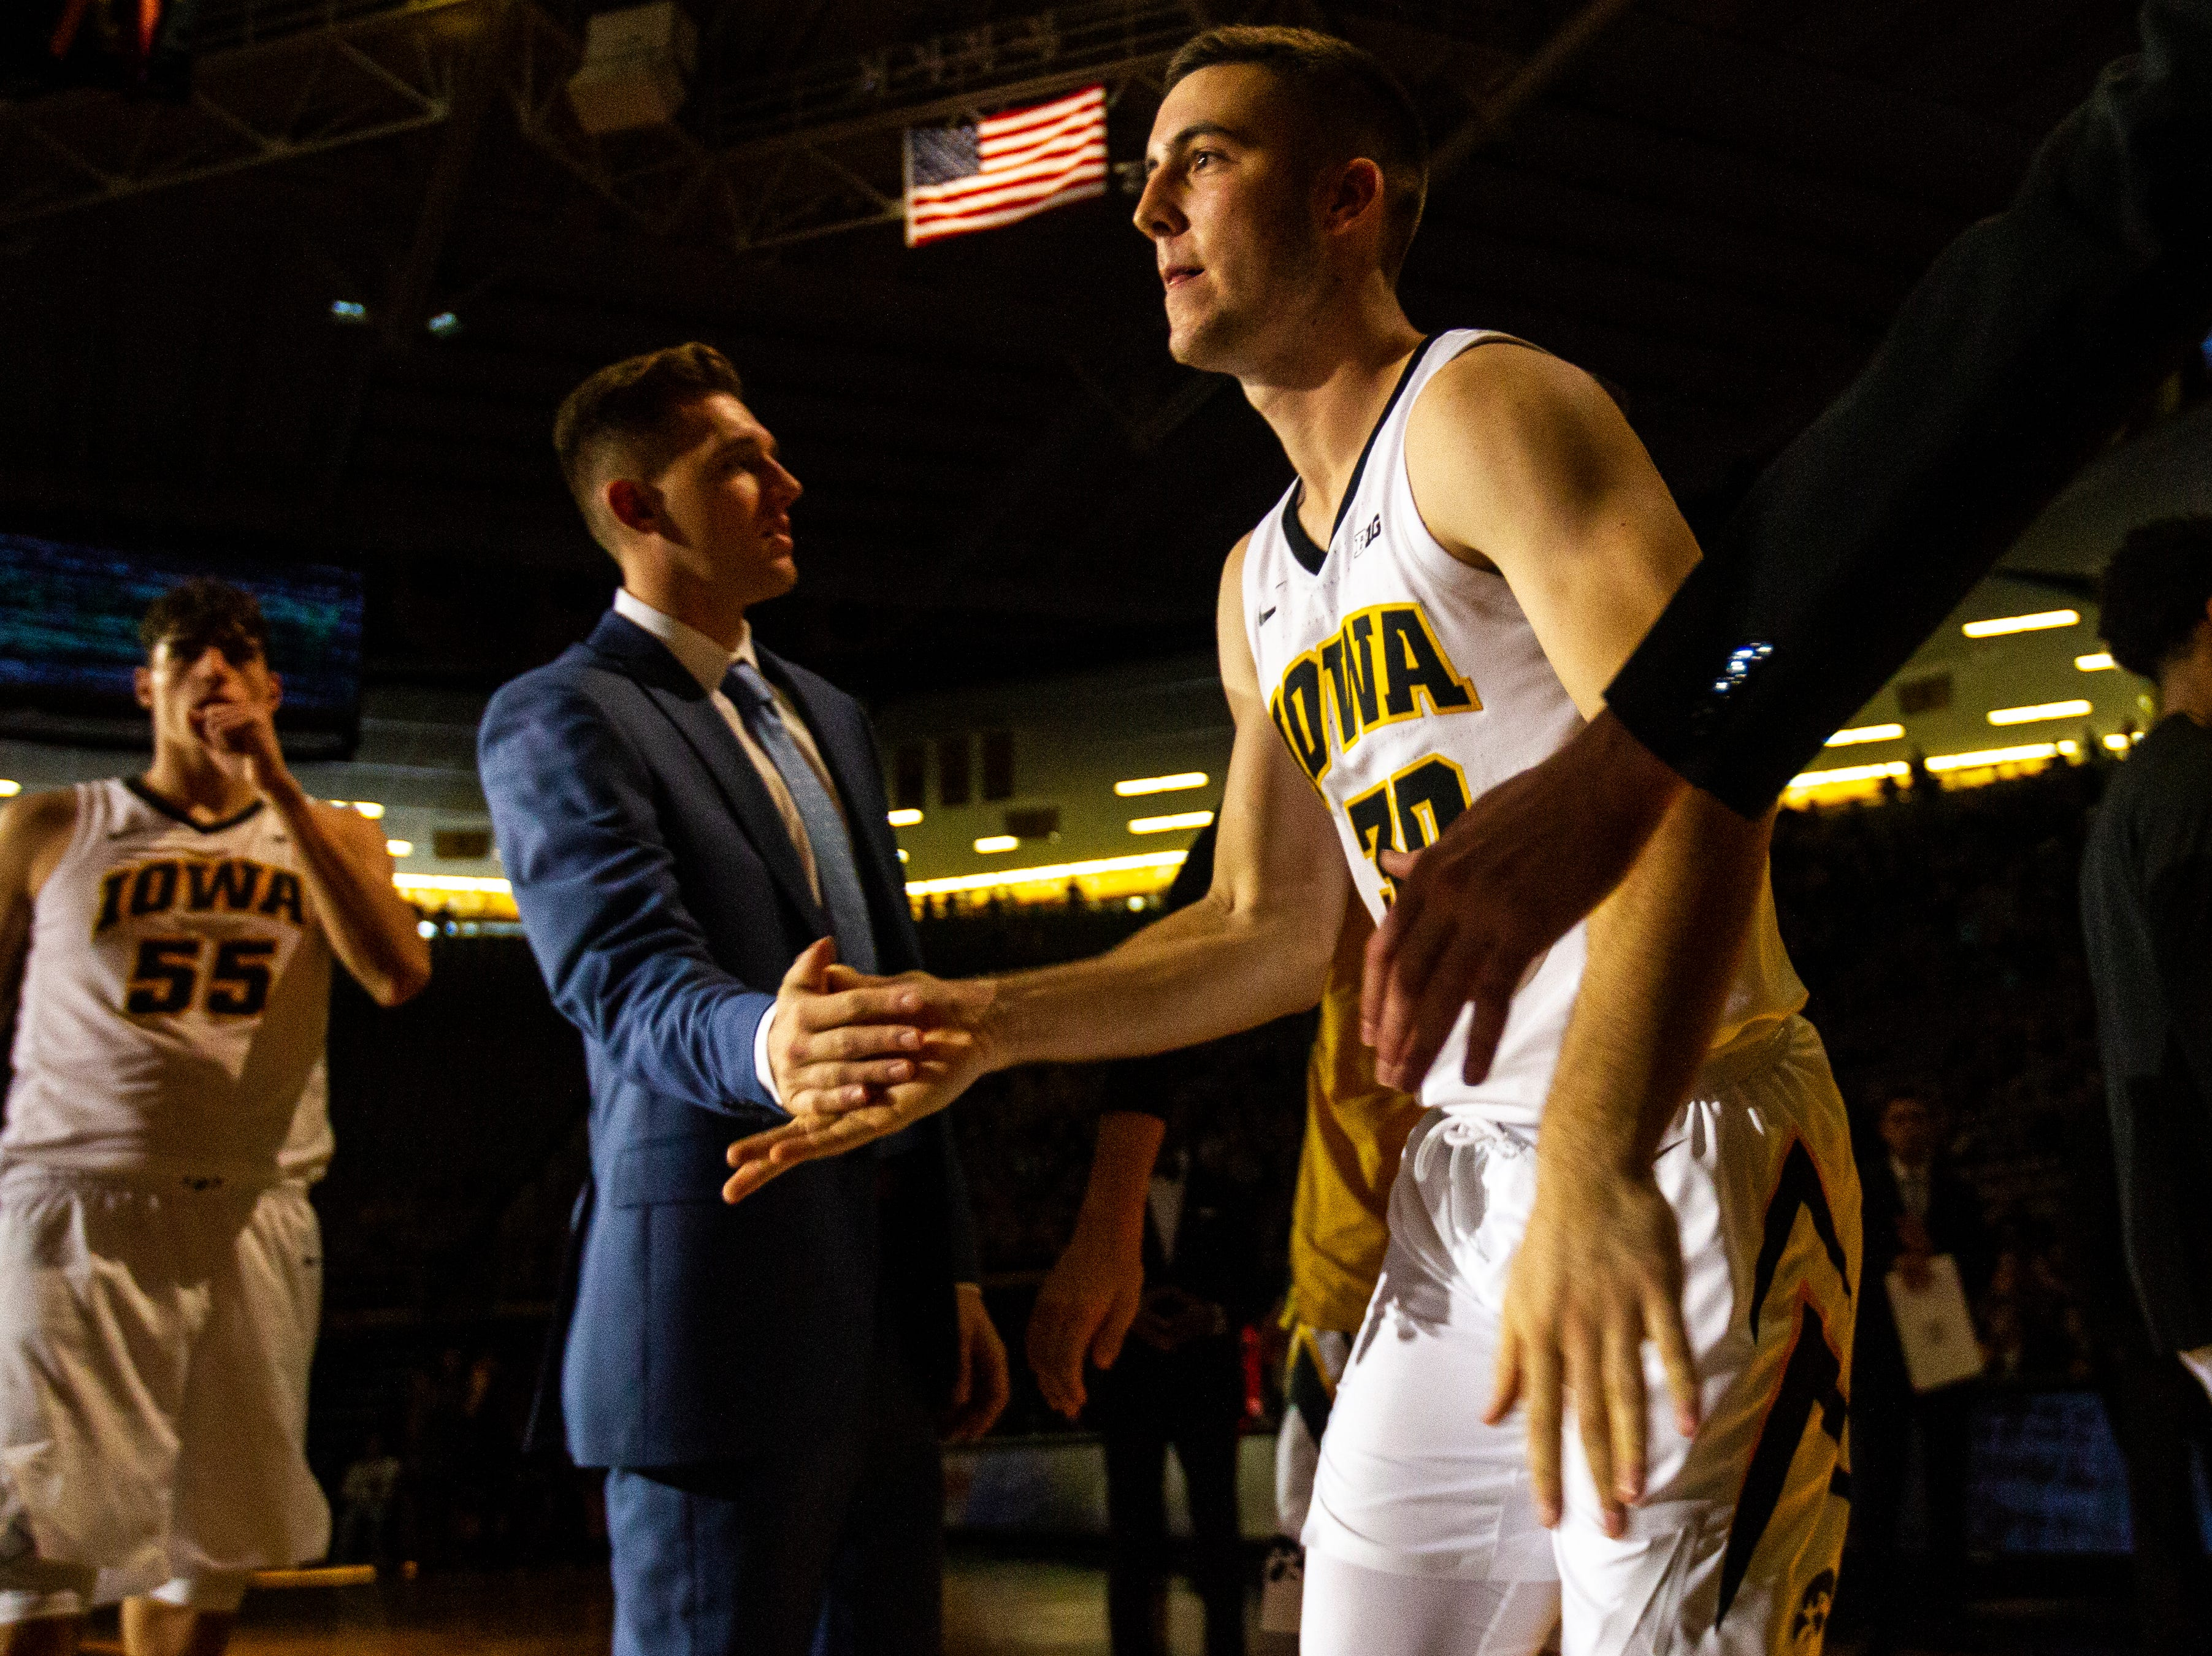 Iowa guard Connor McCaffery (30) is introduced before a men's basketball exhibition game on Sunday, Nov. 4, 2018, at Carver-Hawkeye Arena in Iowa City.